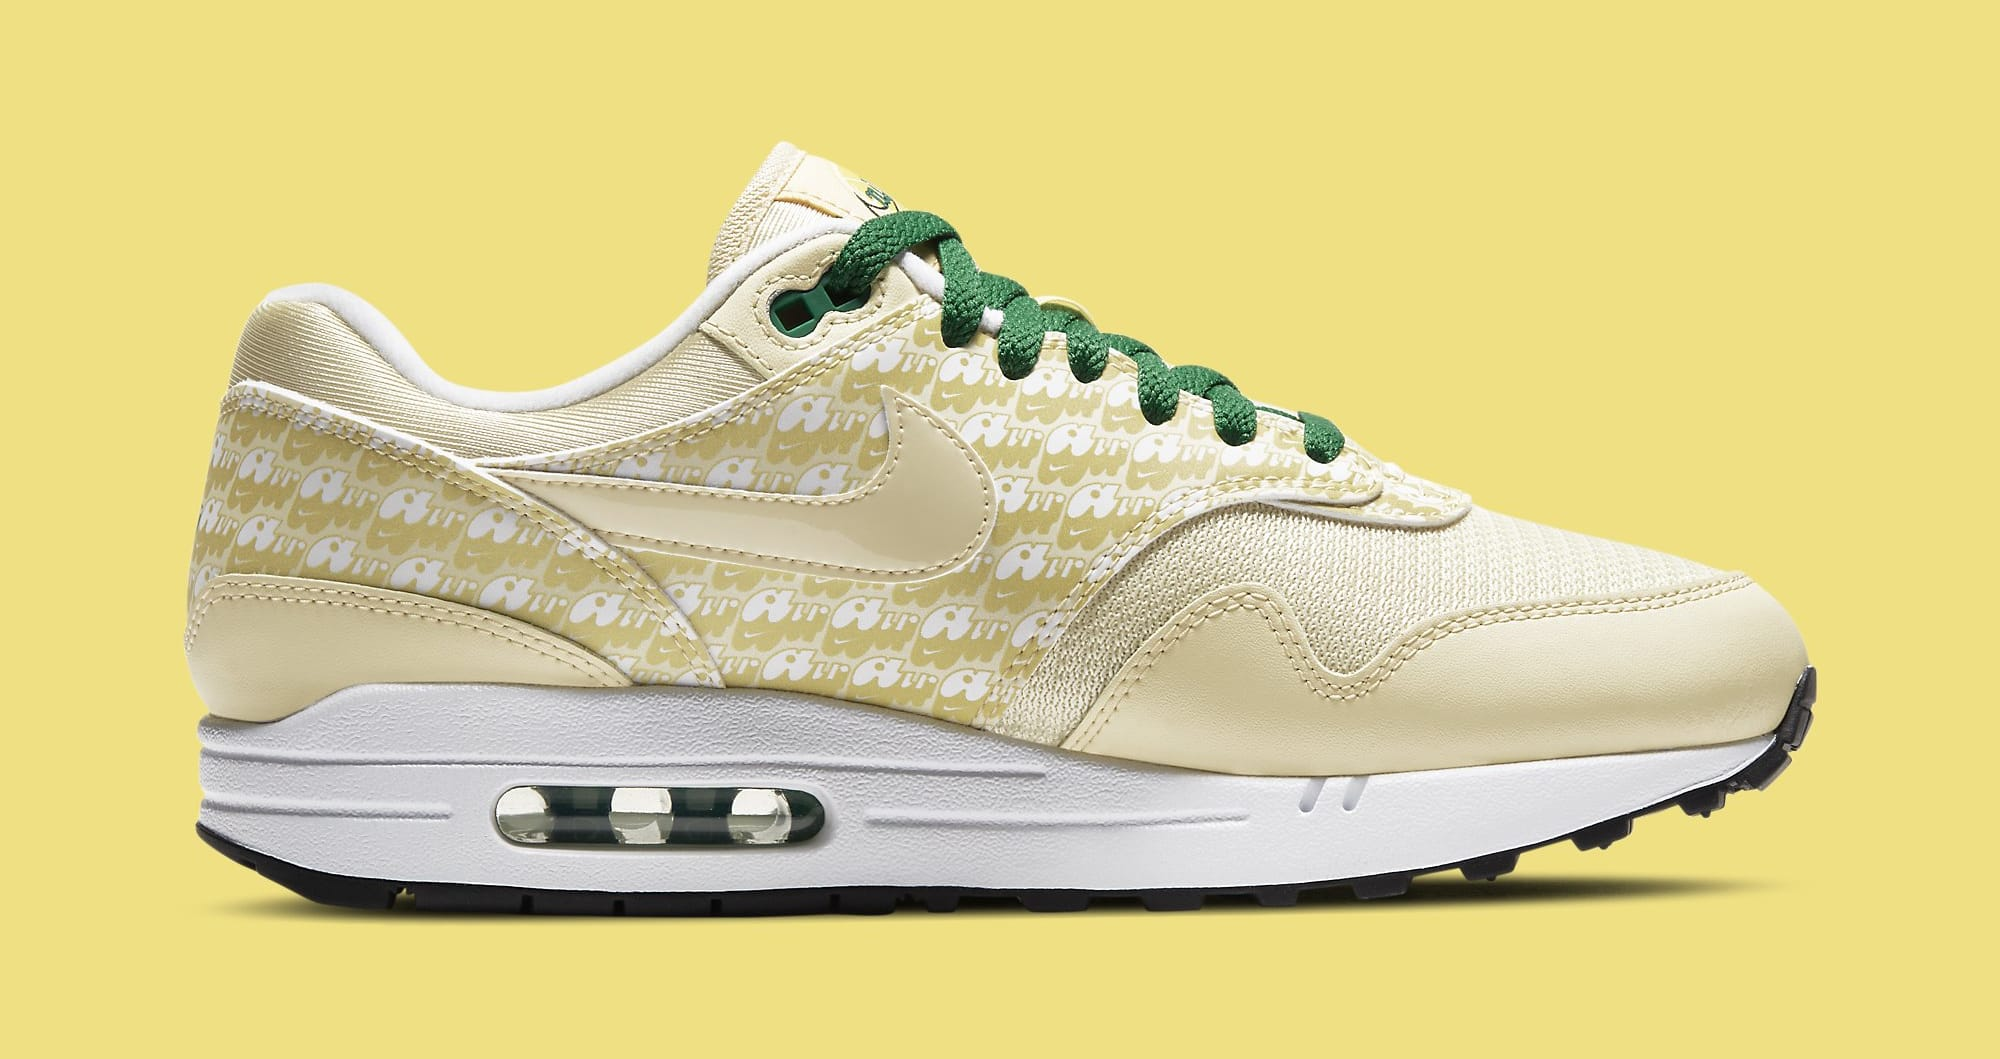 Nike Air Max 1 'Lemonade' CJ0609-700 Medial